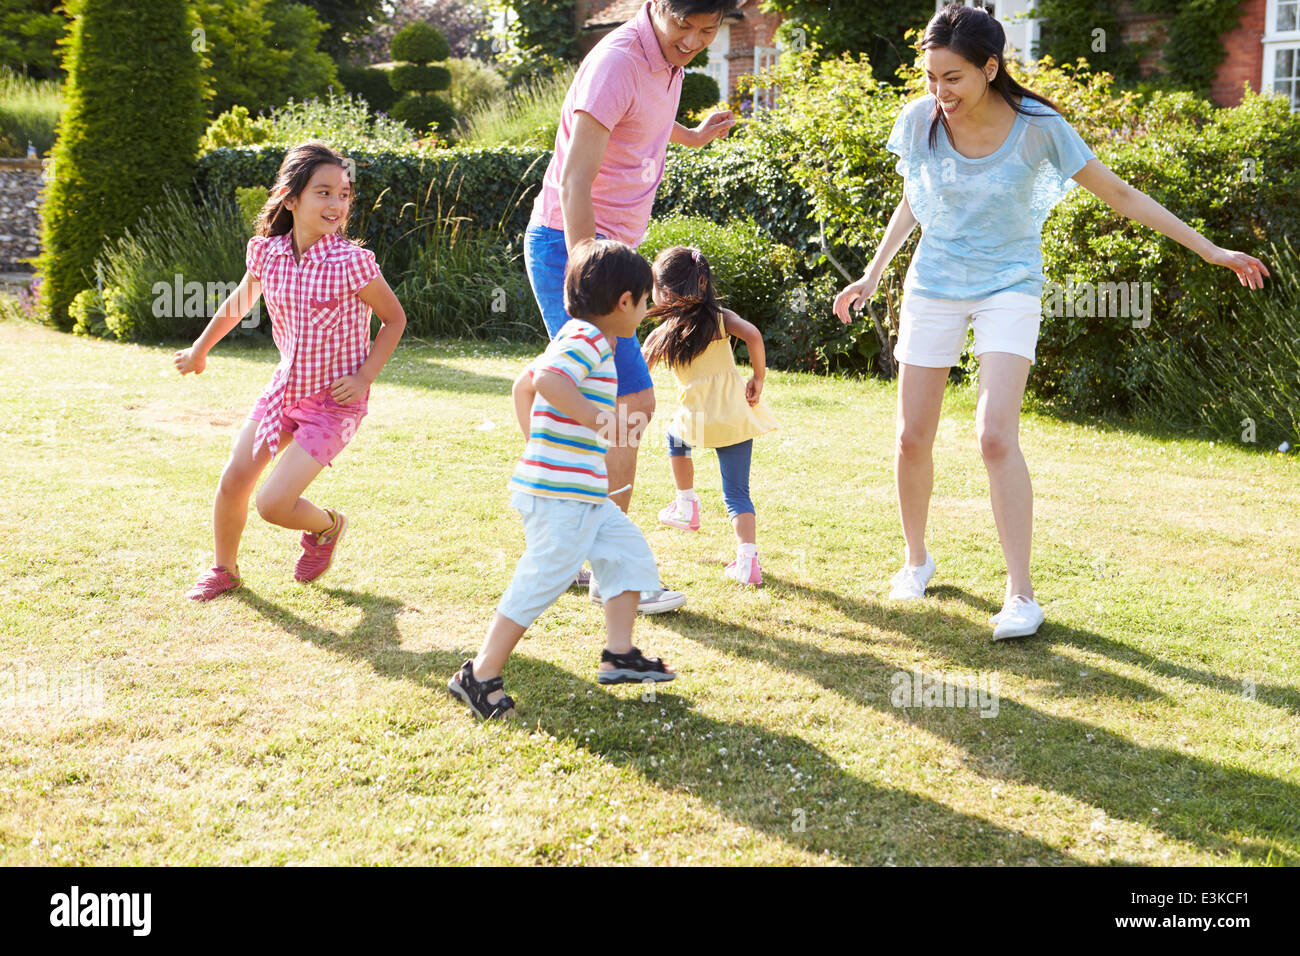 Asian Family Playing In Summer Garden Together - Stock Image